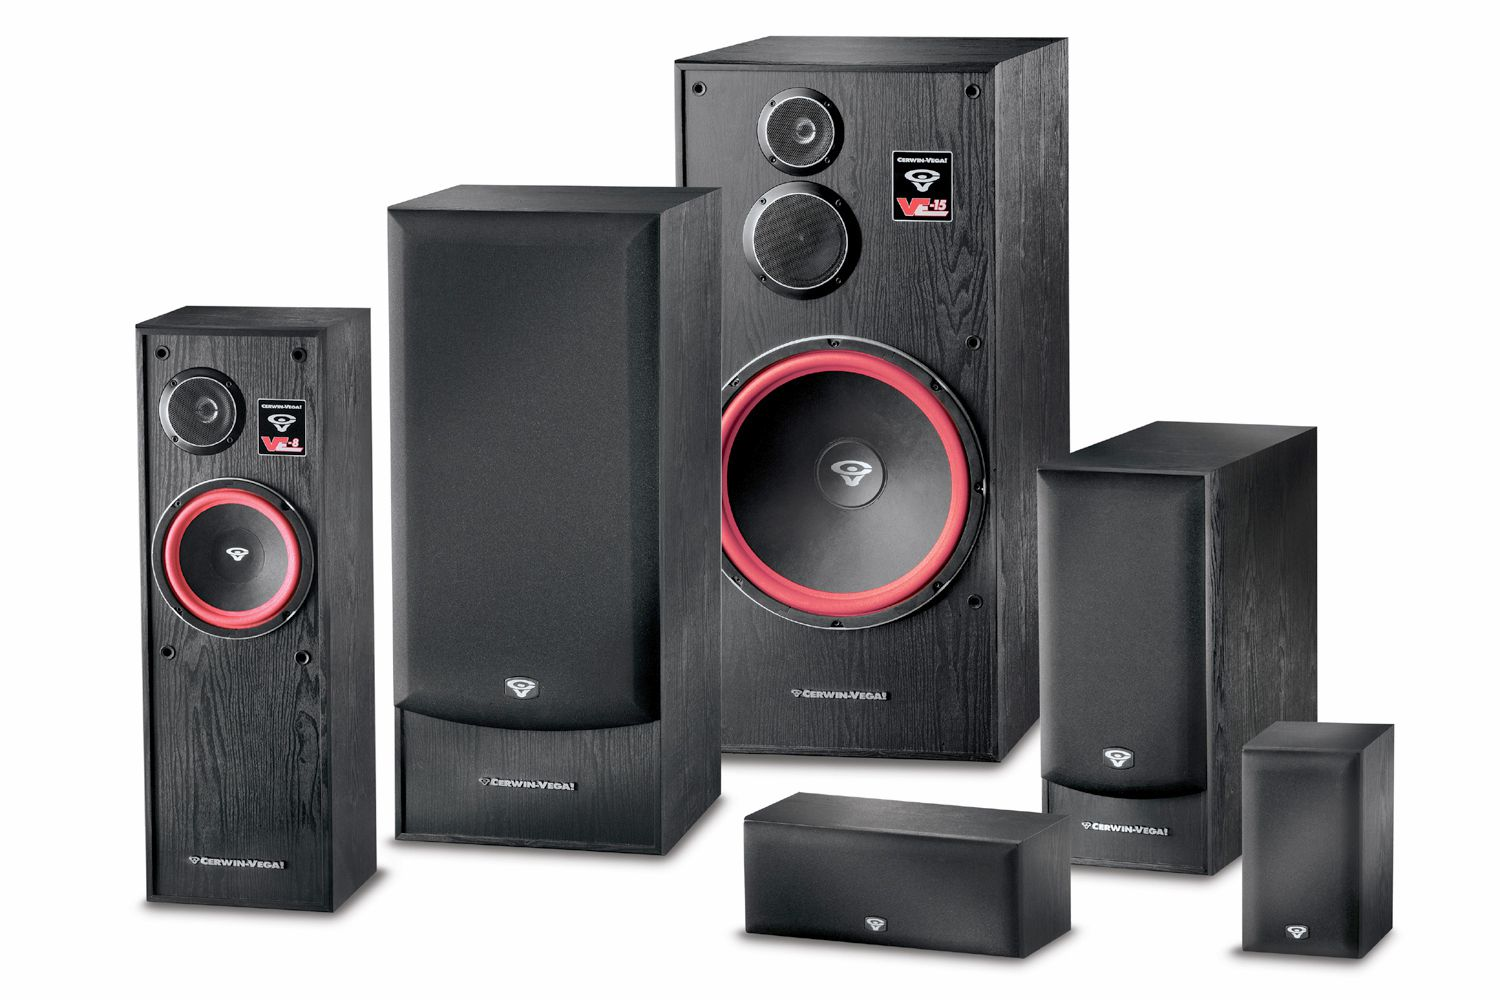 hight resolution of buying the wrong speakers